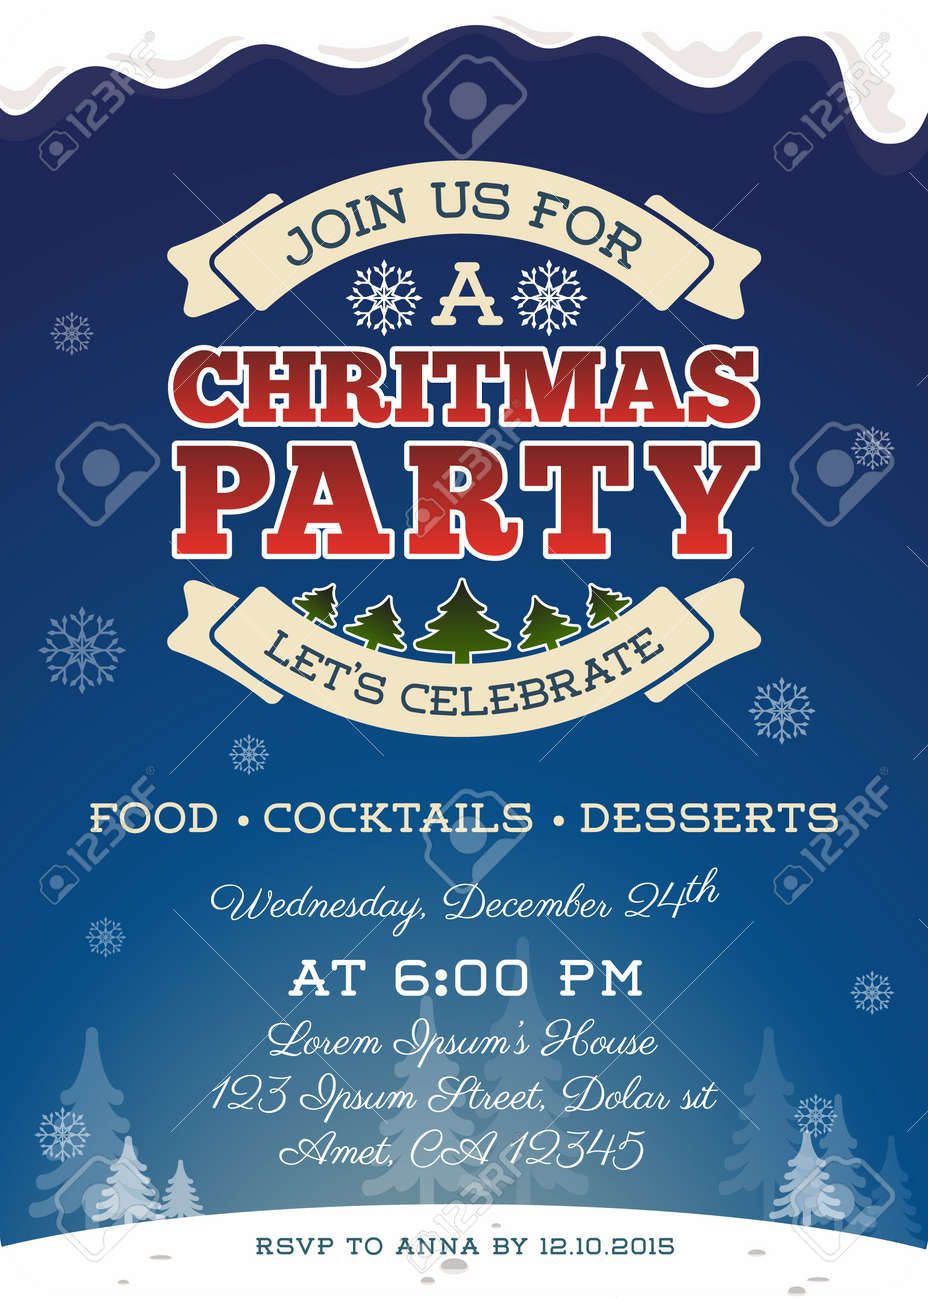 christmas party invitation template design cute christmas christmas party invitation template design cute christmas invitation vector illustration stock vector 48219825